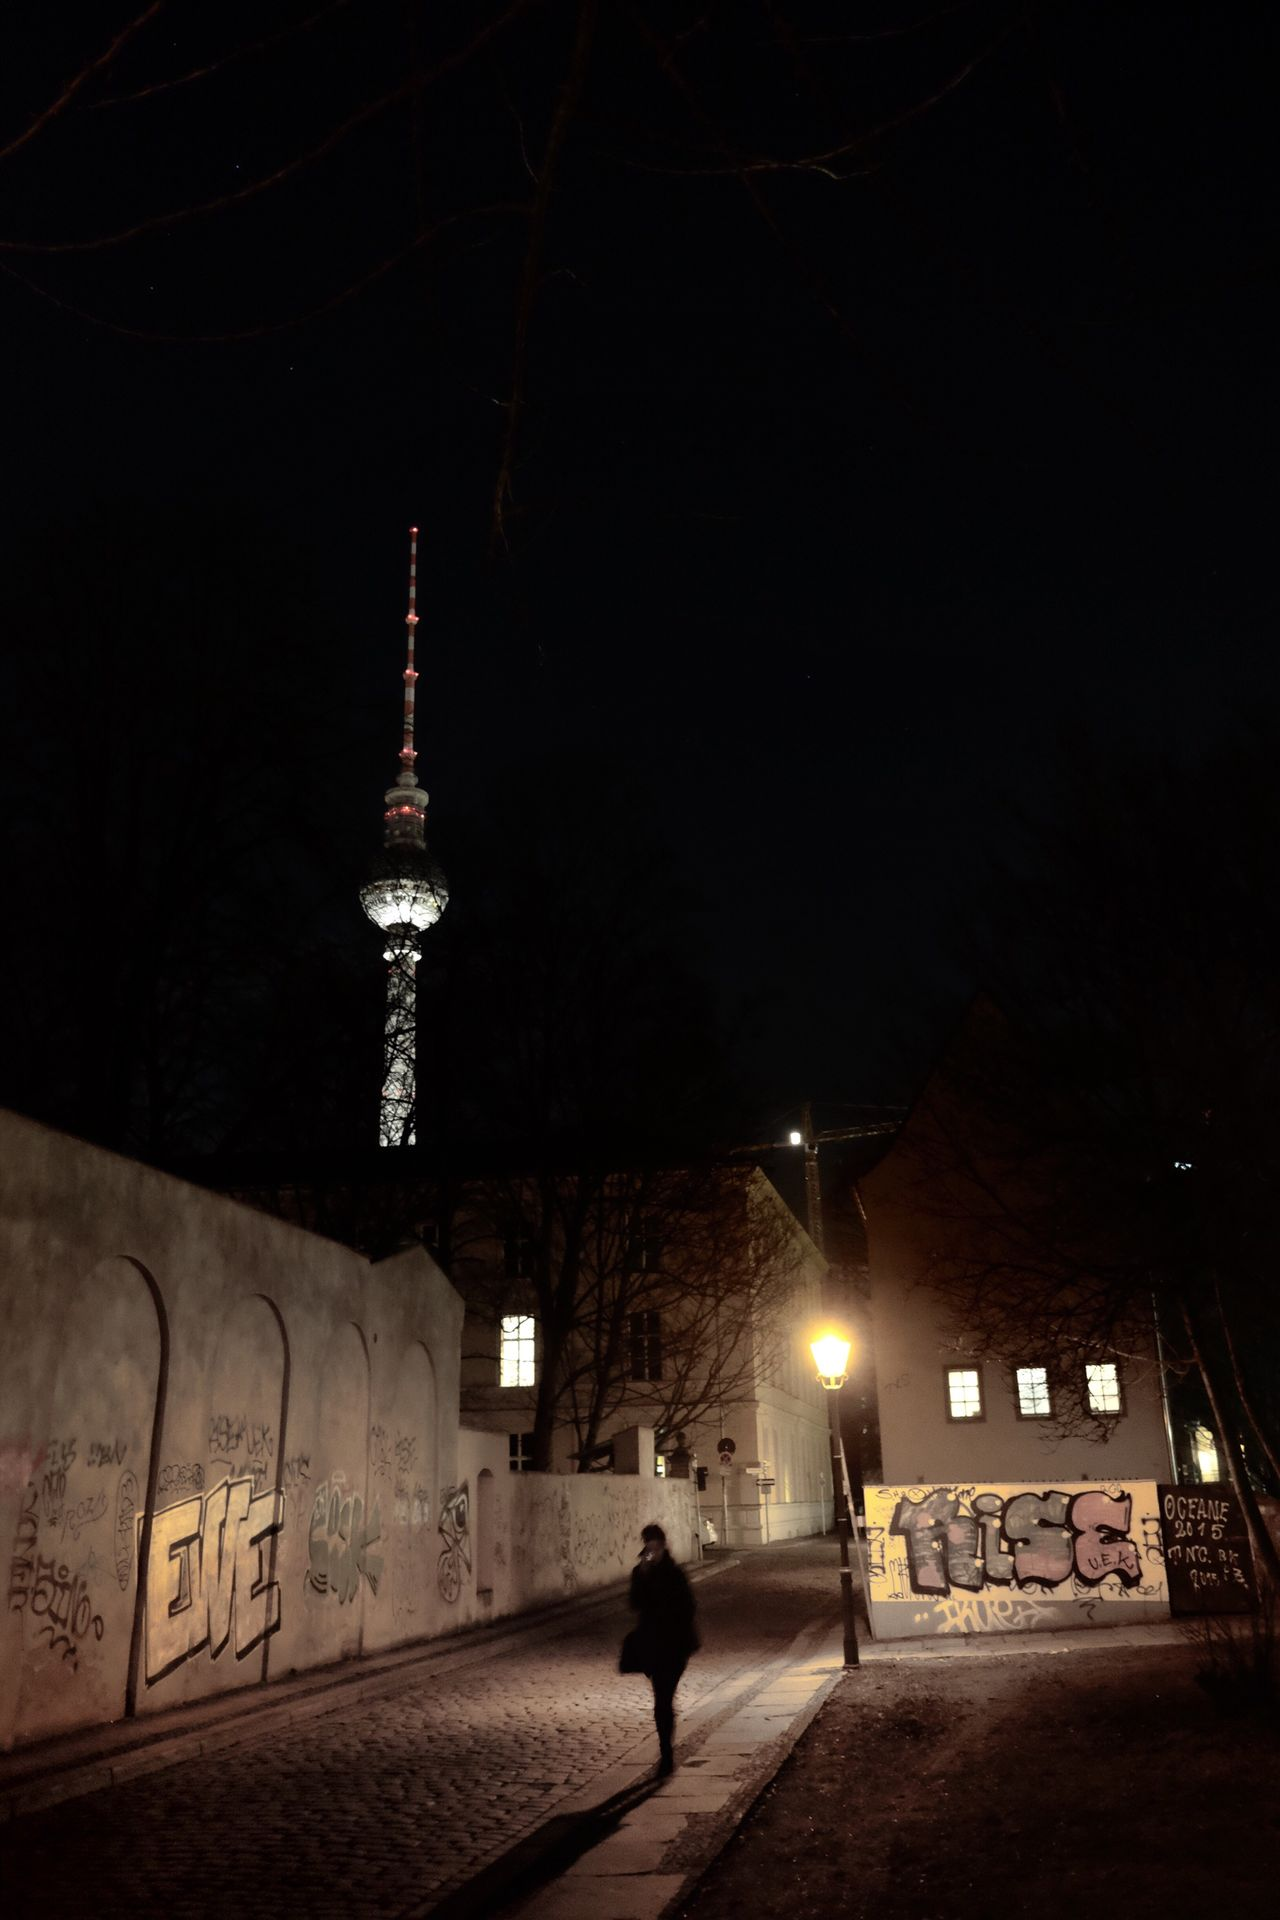 Night Illuminated Built Structure Architecture Walking Building Exterior Travel Destinations Outdoors City Real People One Person Tower Place Of Worship People Berlin That Tower Again